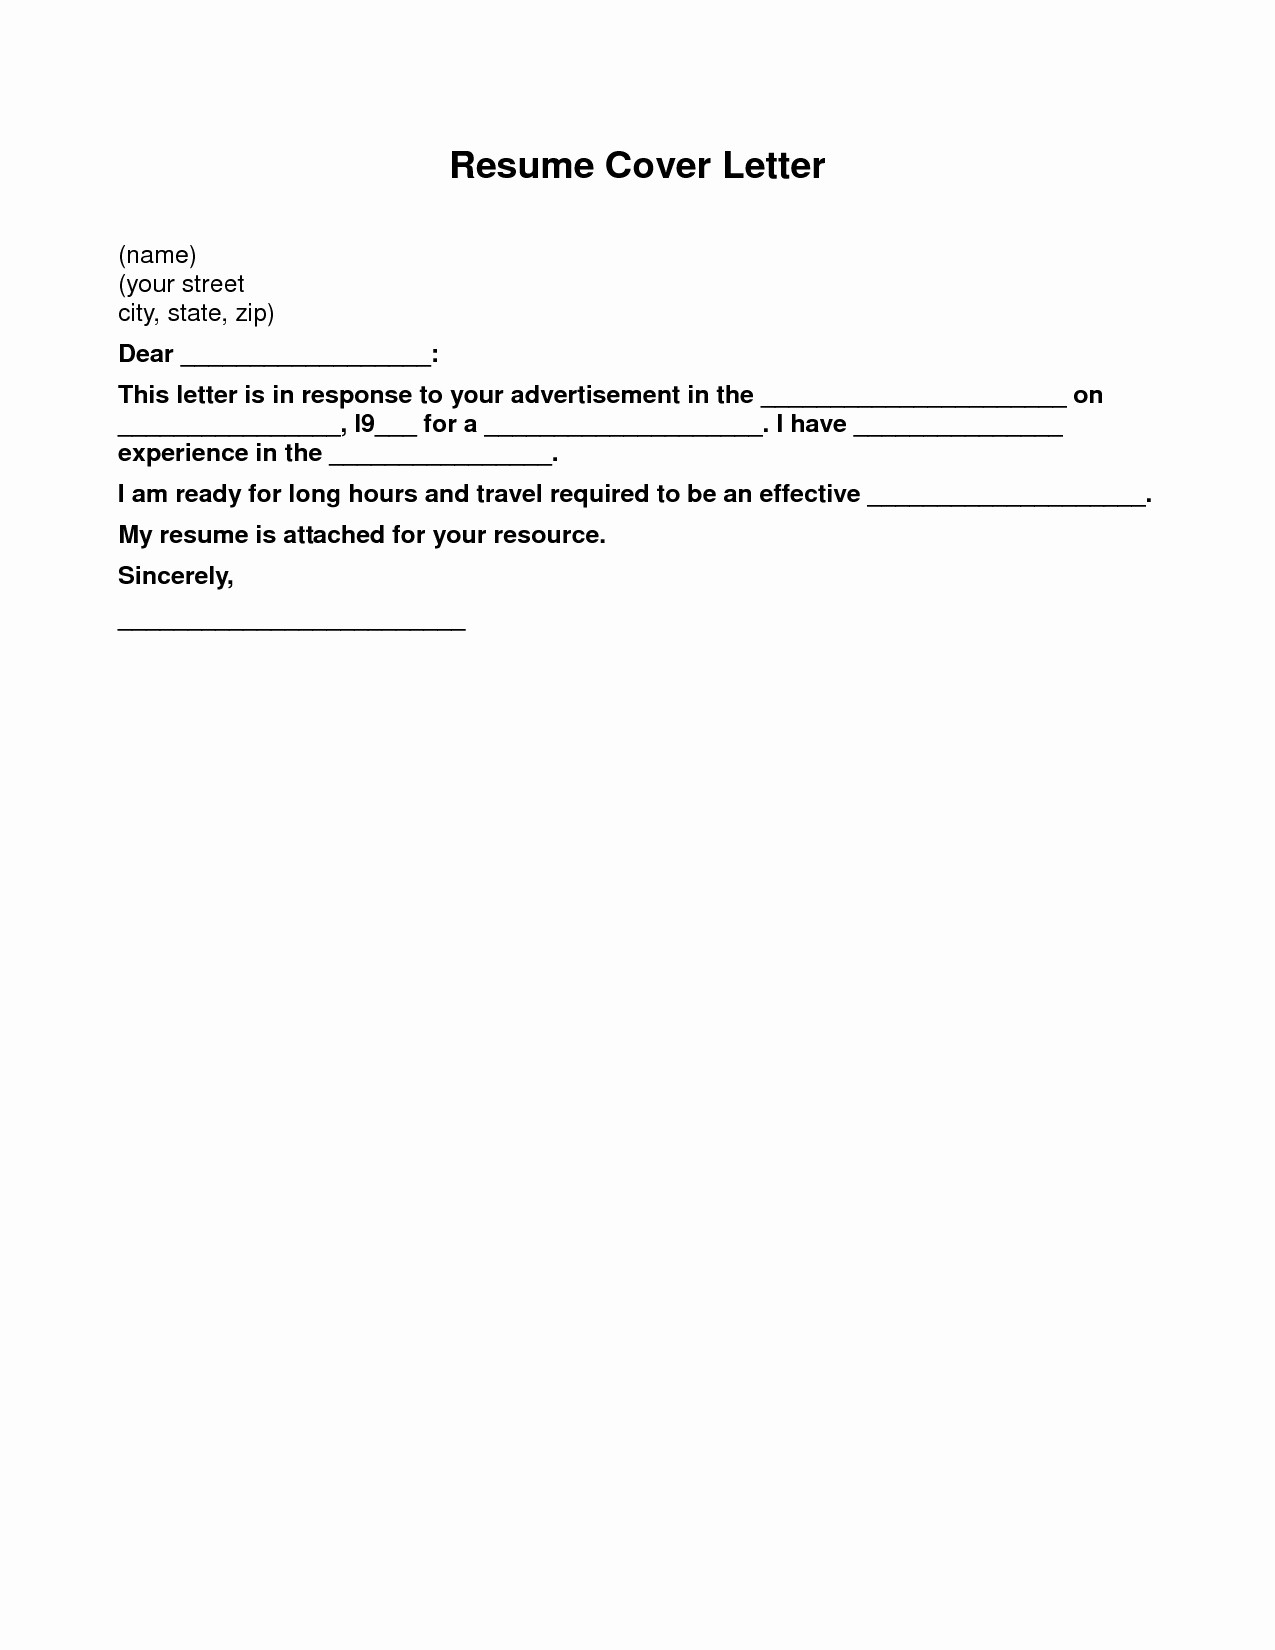 Resume and Cover Letter Template Awesome Basic Cover Letter for A Resume